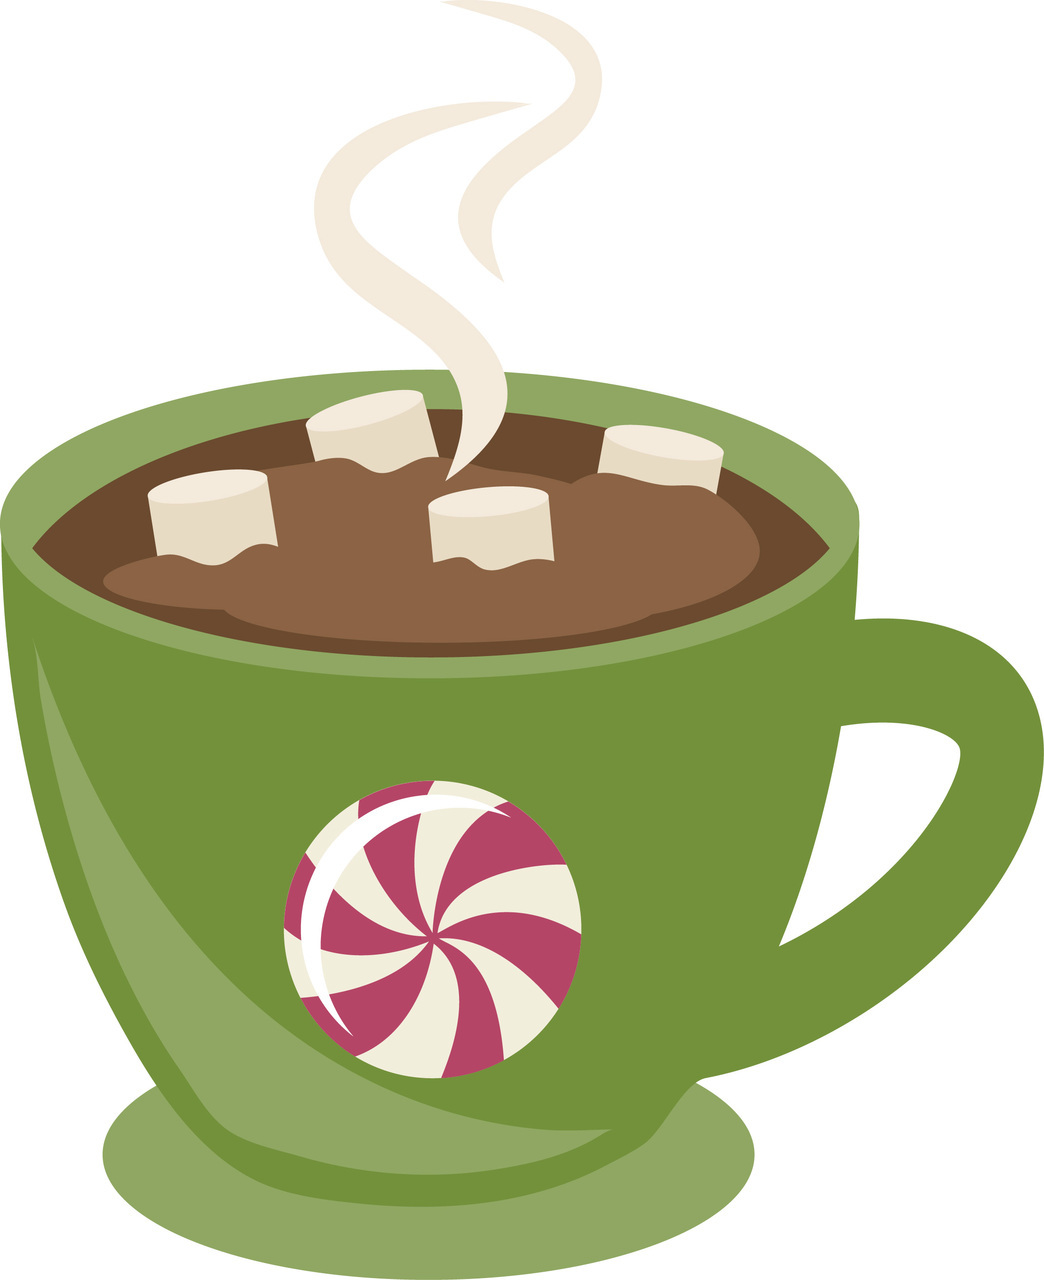 Free Hot Chocolate Clipart Png, Download Free Clip Art, Free.